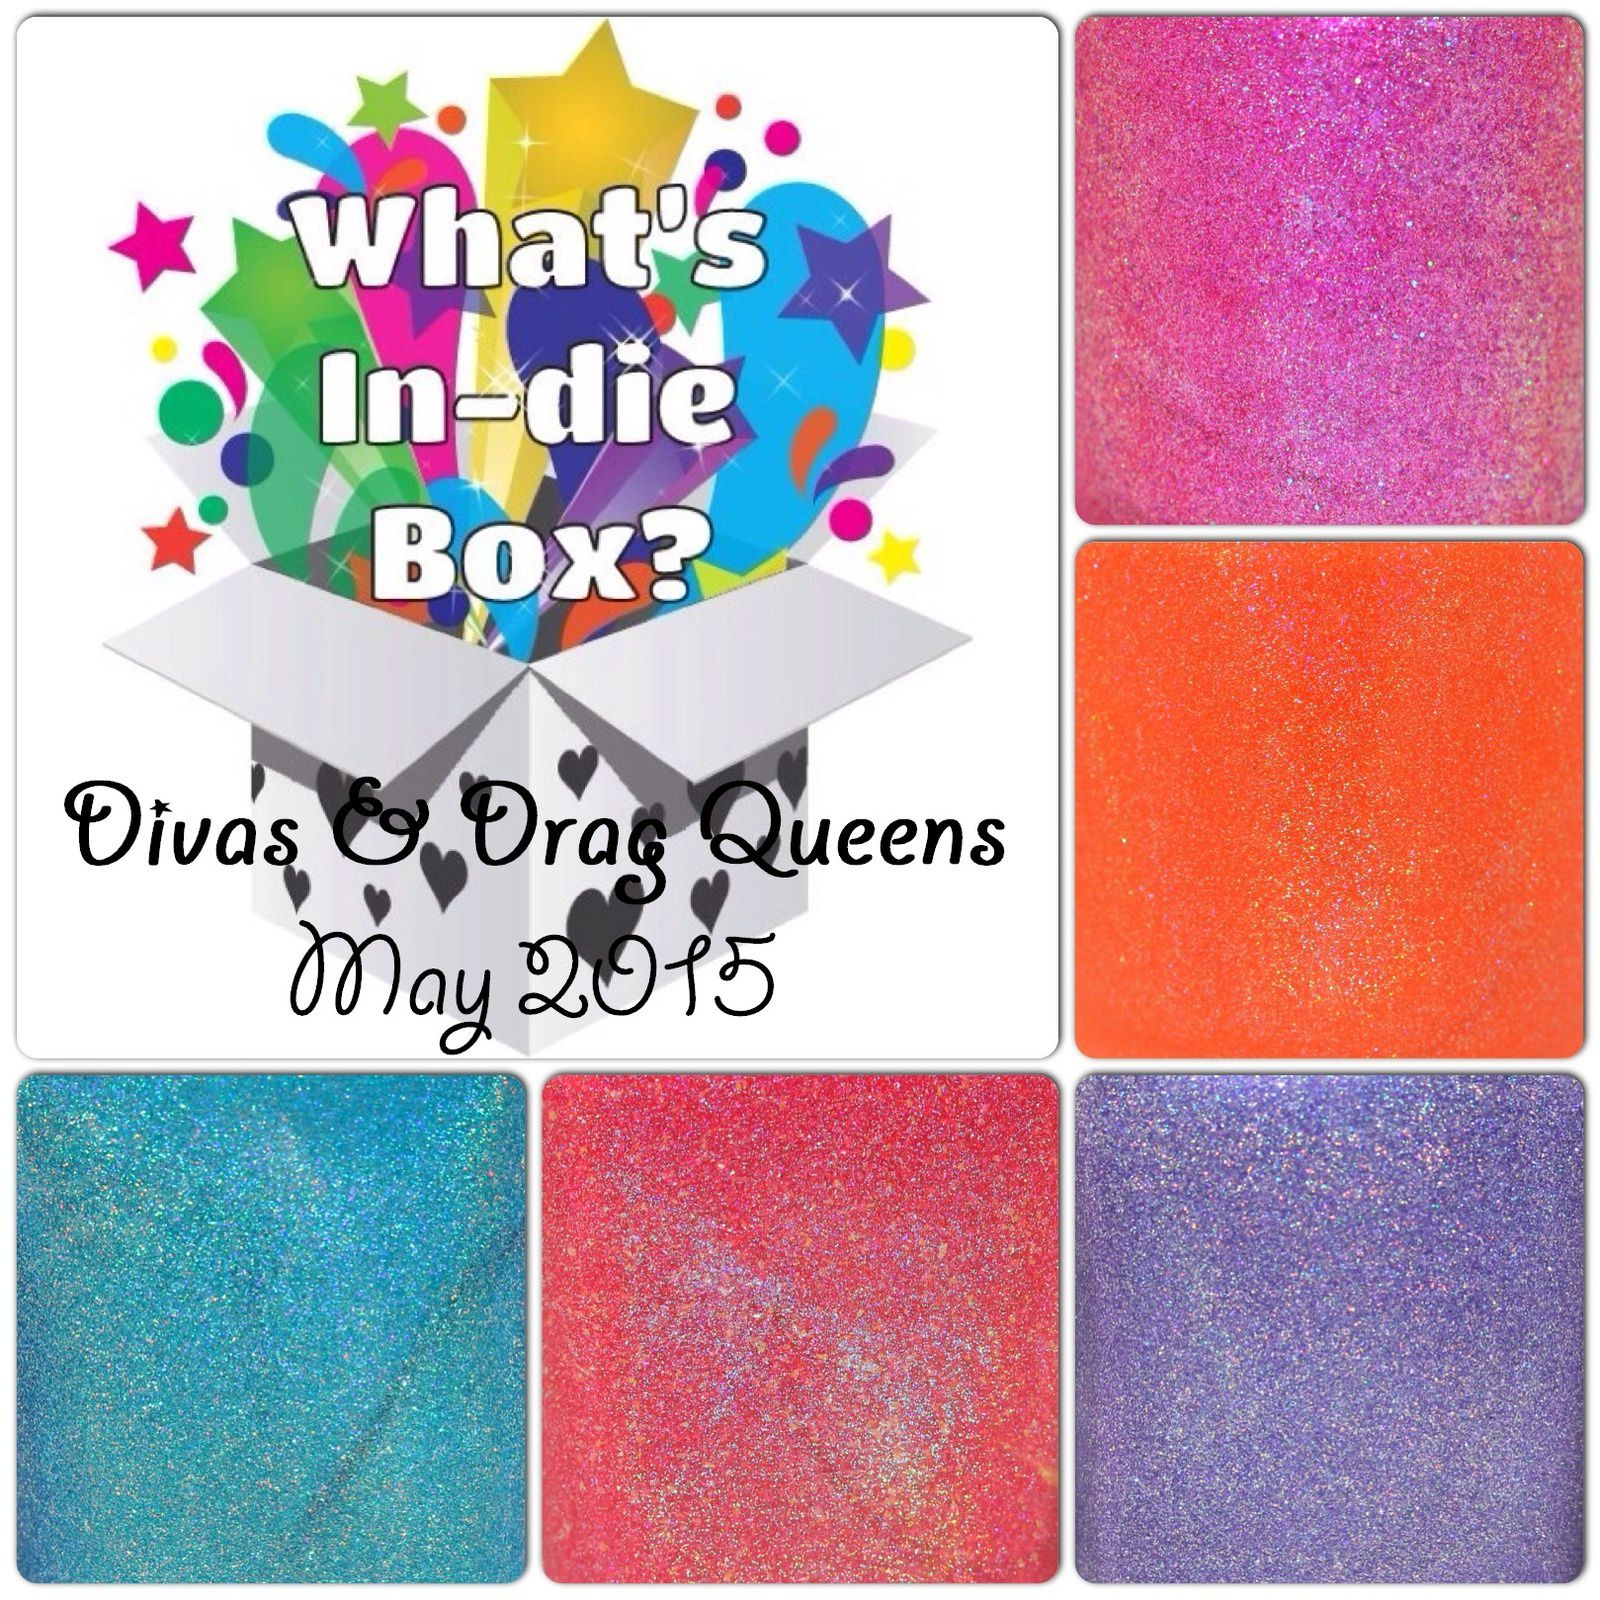 What's Indie Box - May 2015 - Diva & Drag Queens